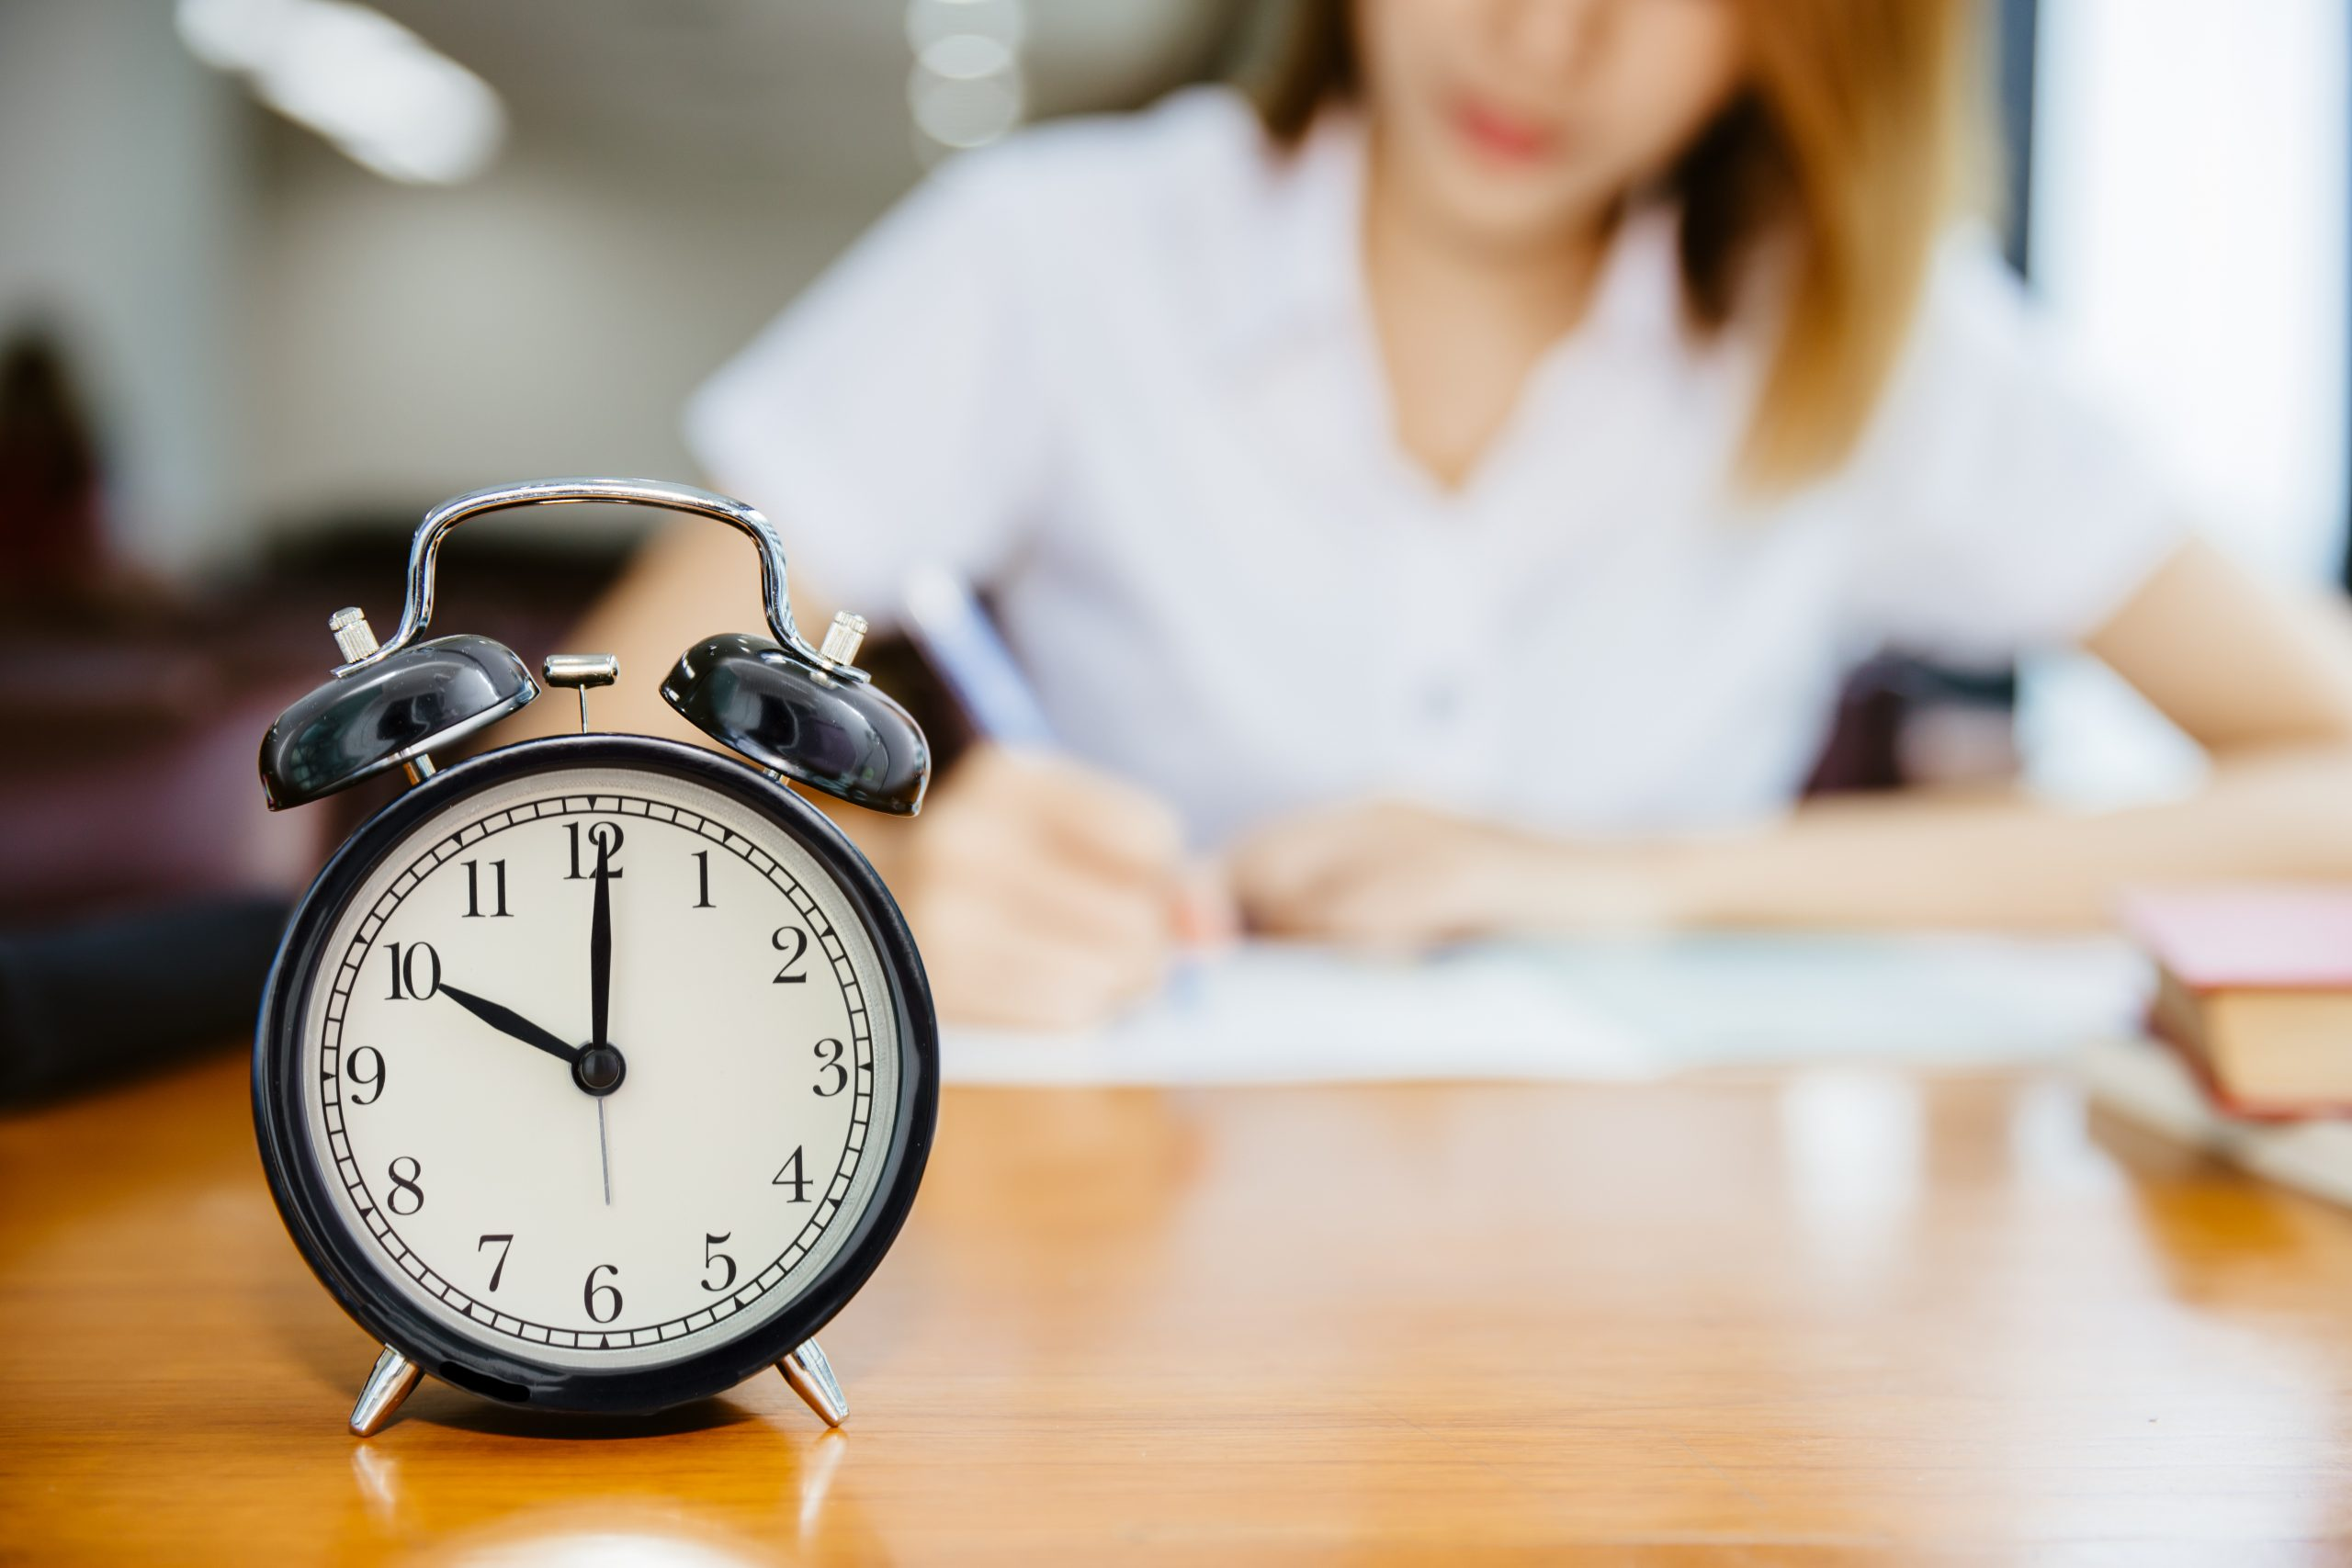 Alarm clock on table in front of girl writing in background